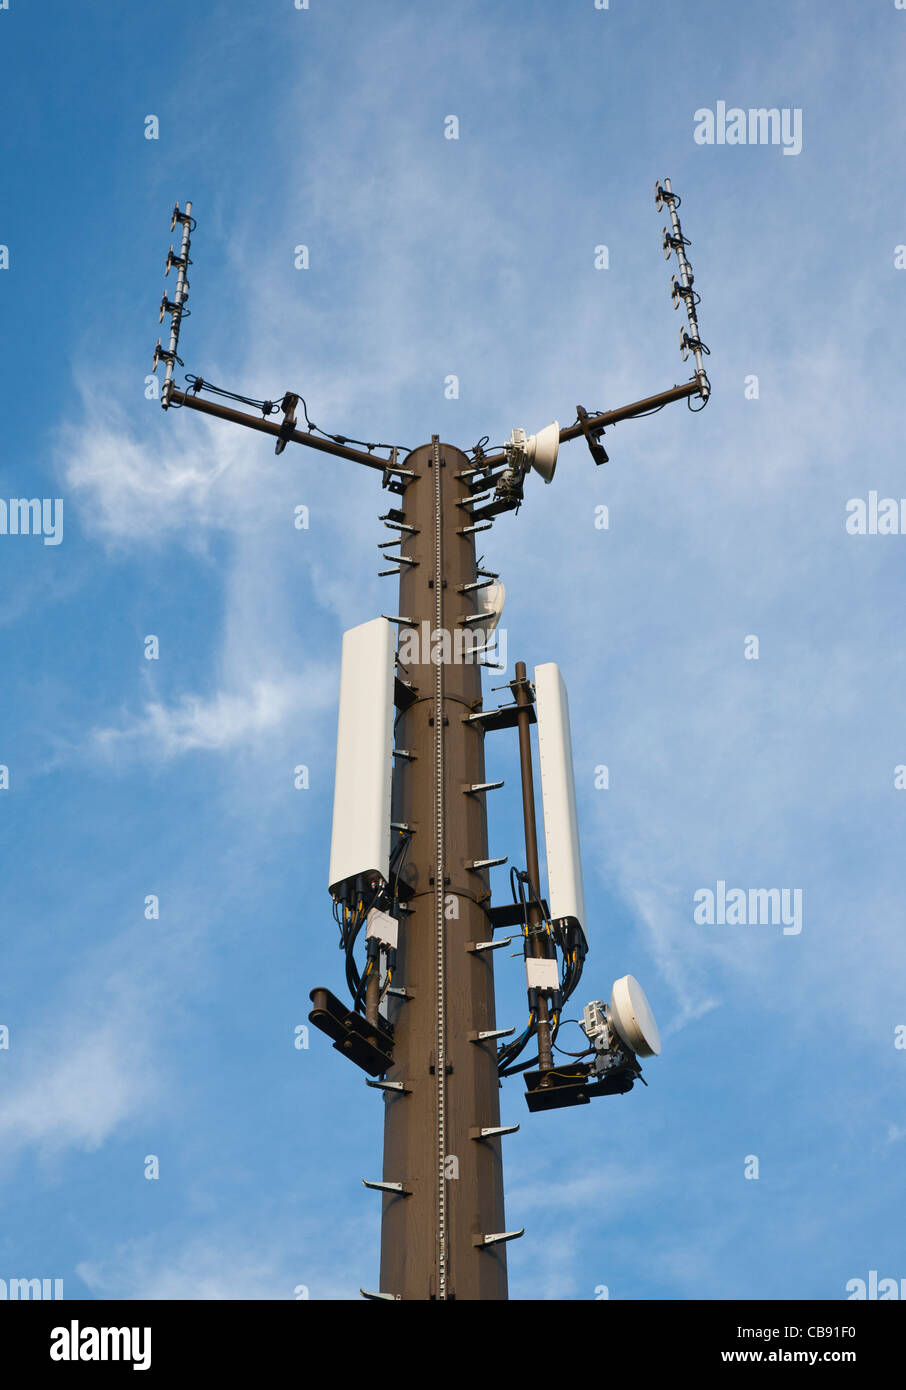 Mobile telecommunications and microwave masts near Crediton, Devon, England - Stock Image